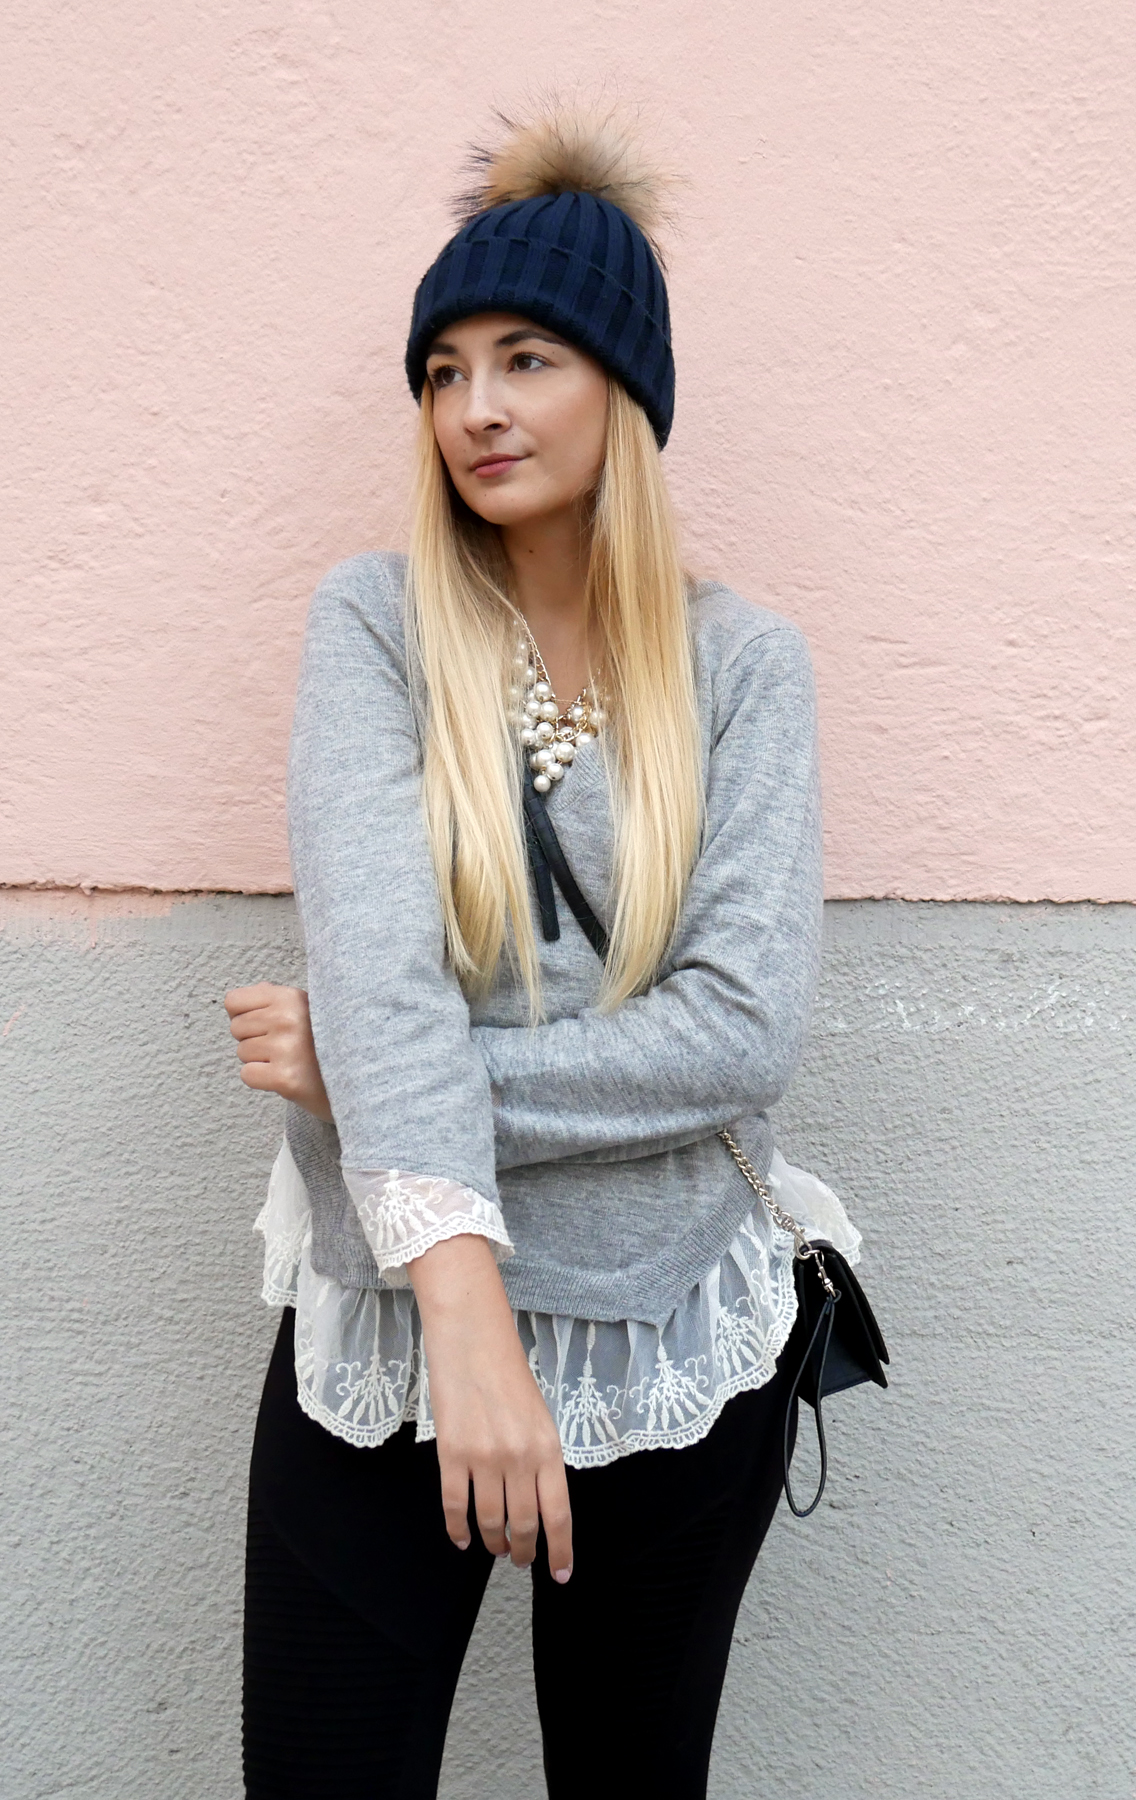 Lace-Sweater-and-studded-boots-layering-look-munich-blogger-tanja.jpg